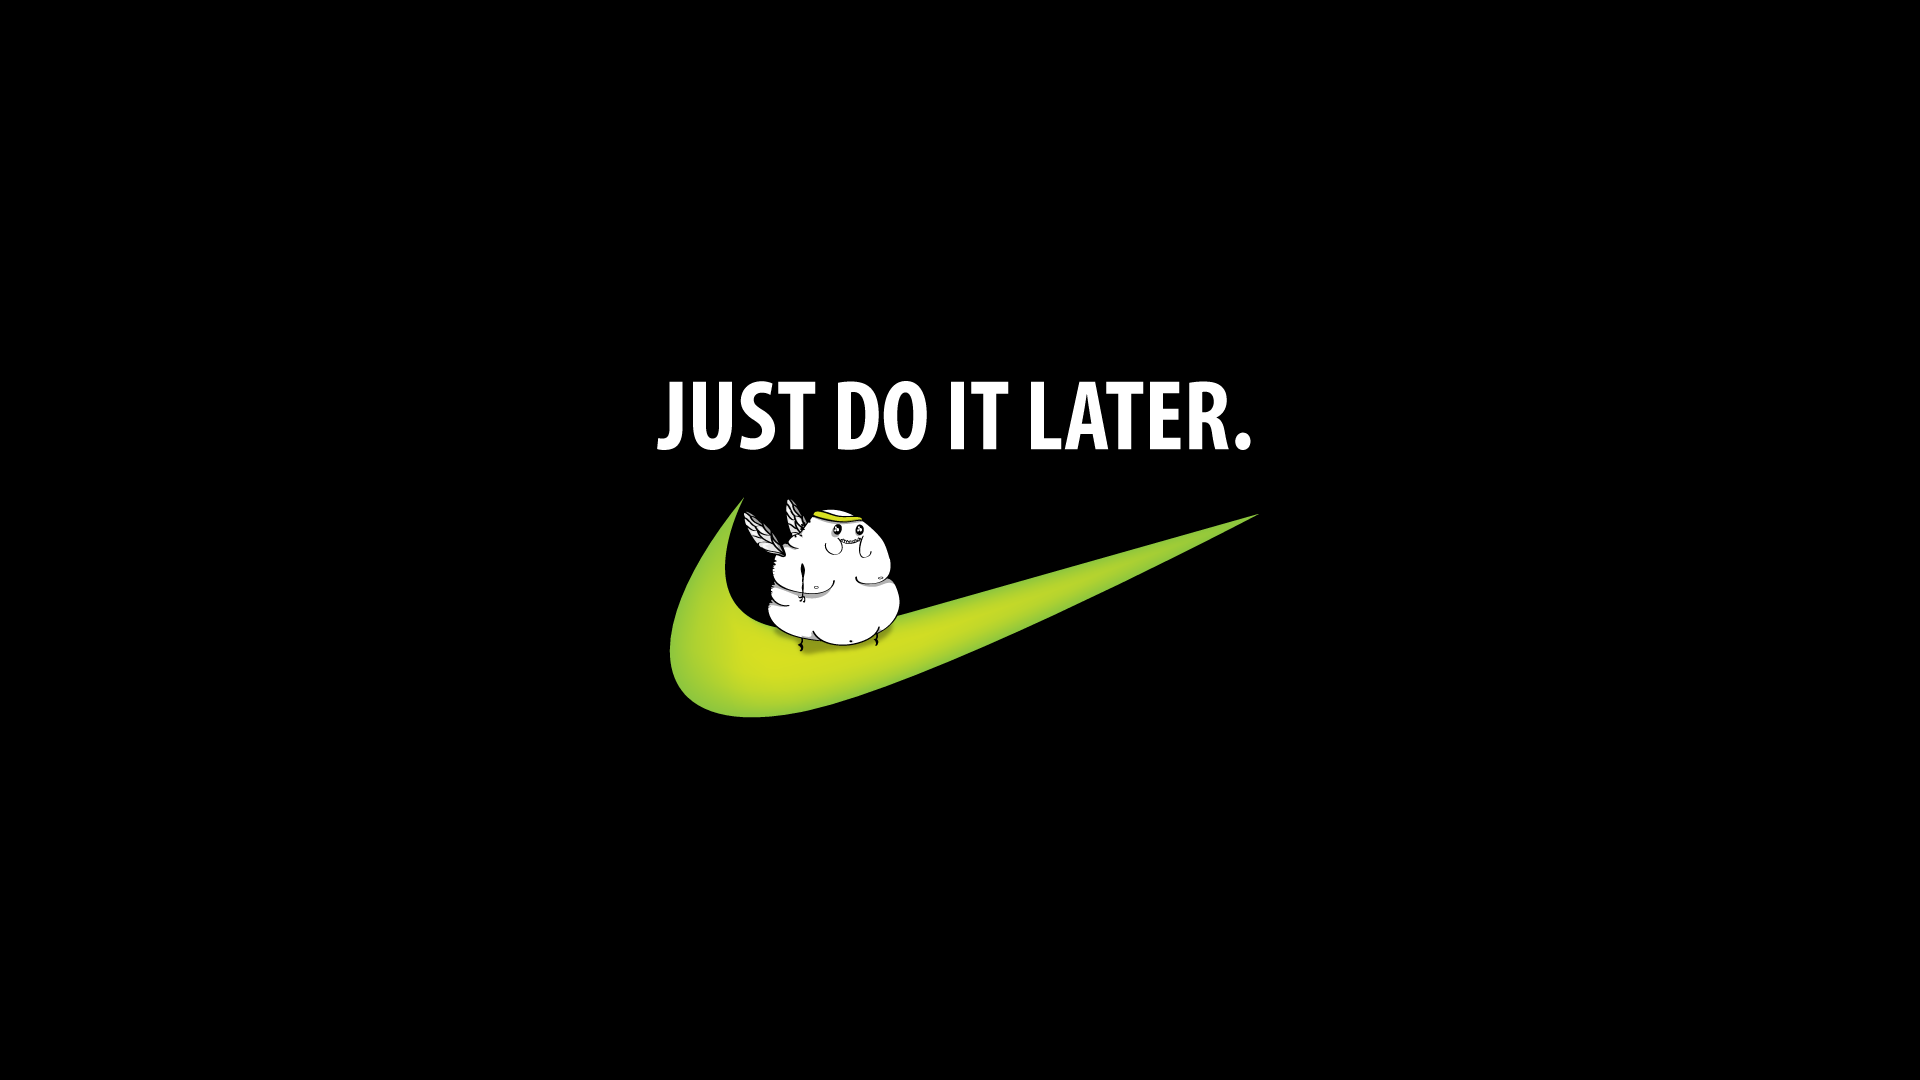 Funny Wallpapers Just Do It Later